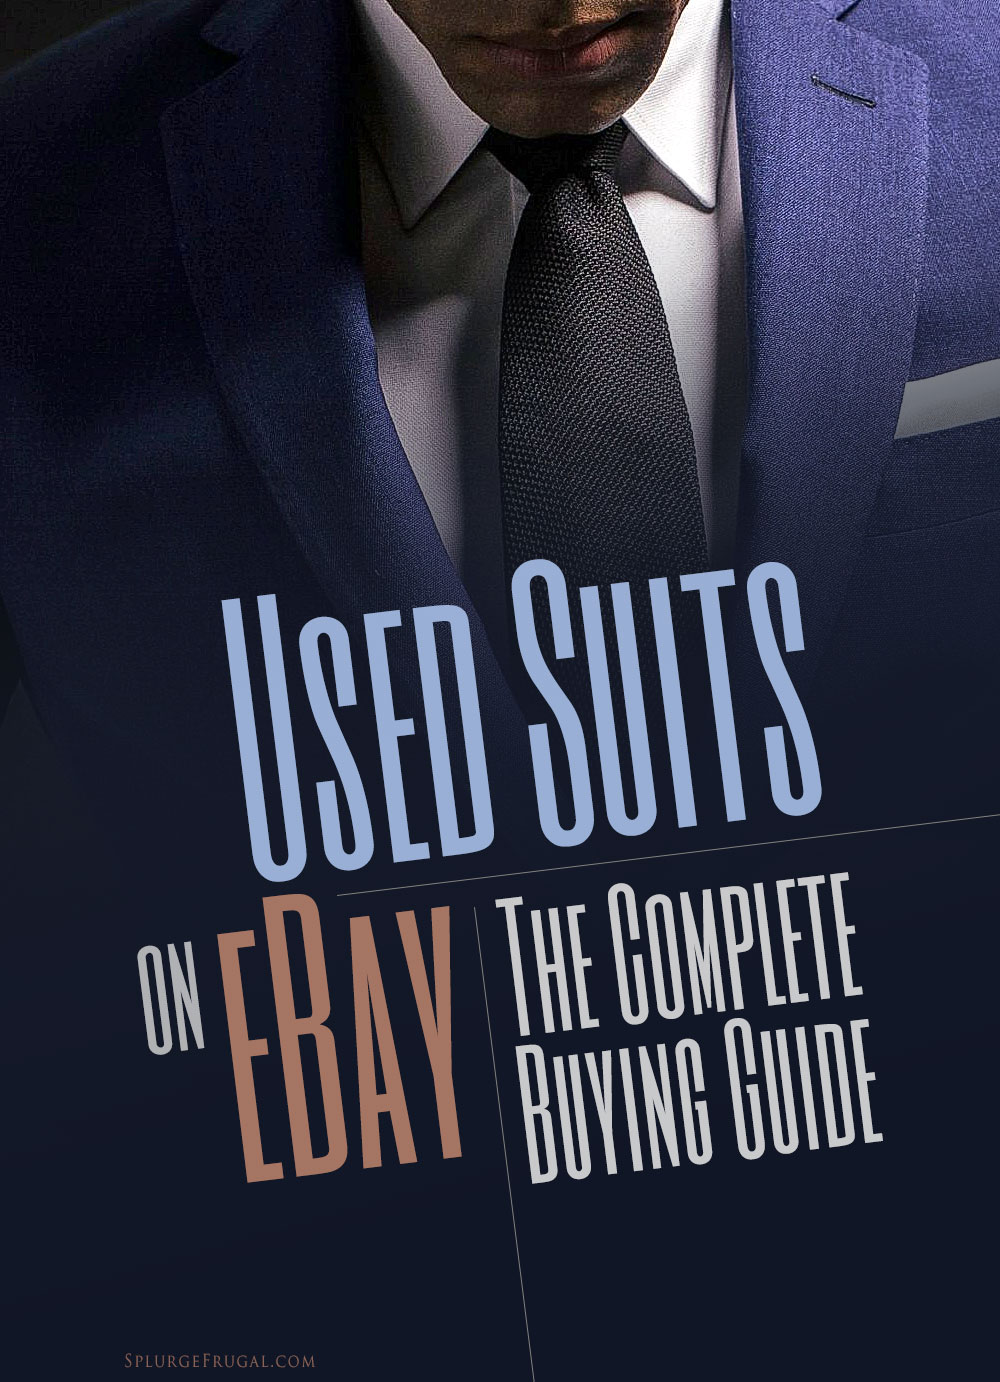 How To Buy Used Suits on eBay